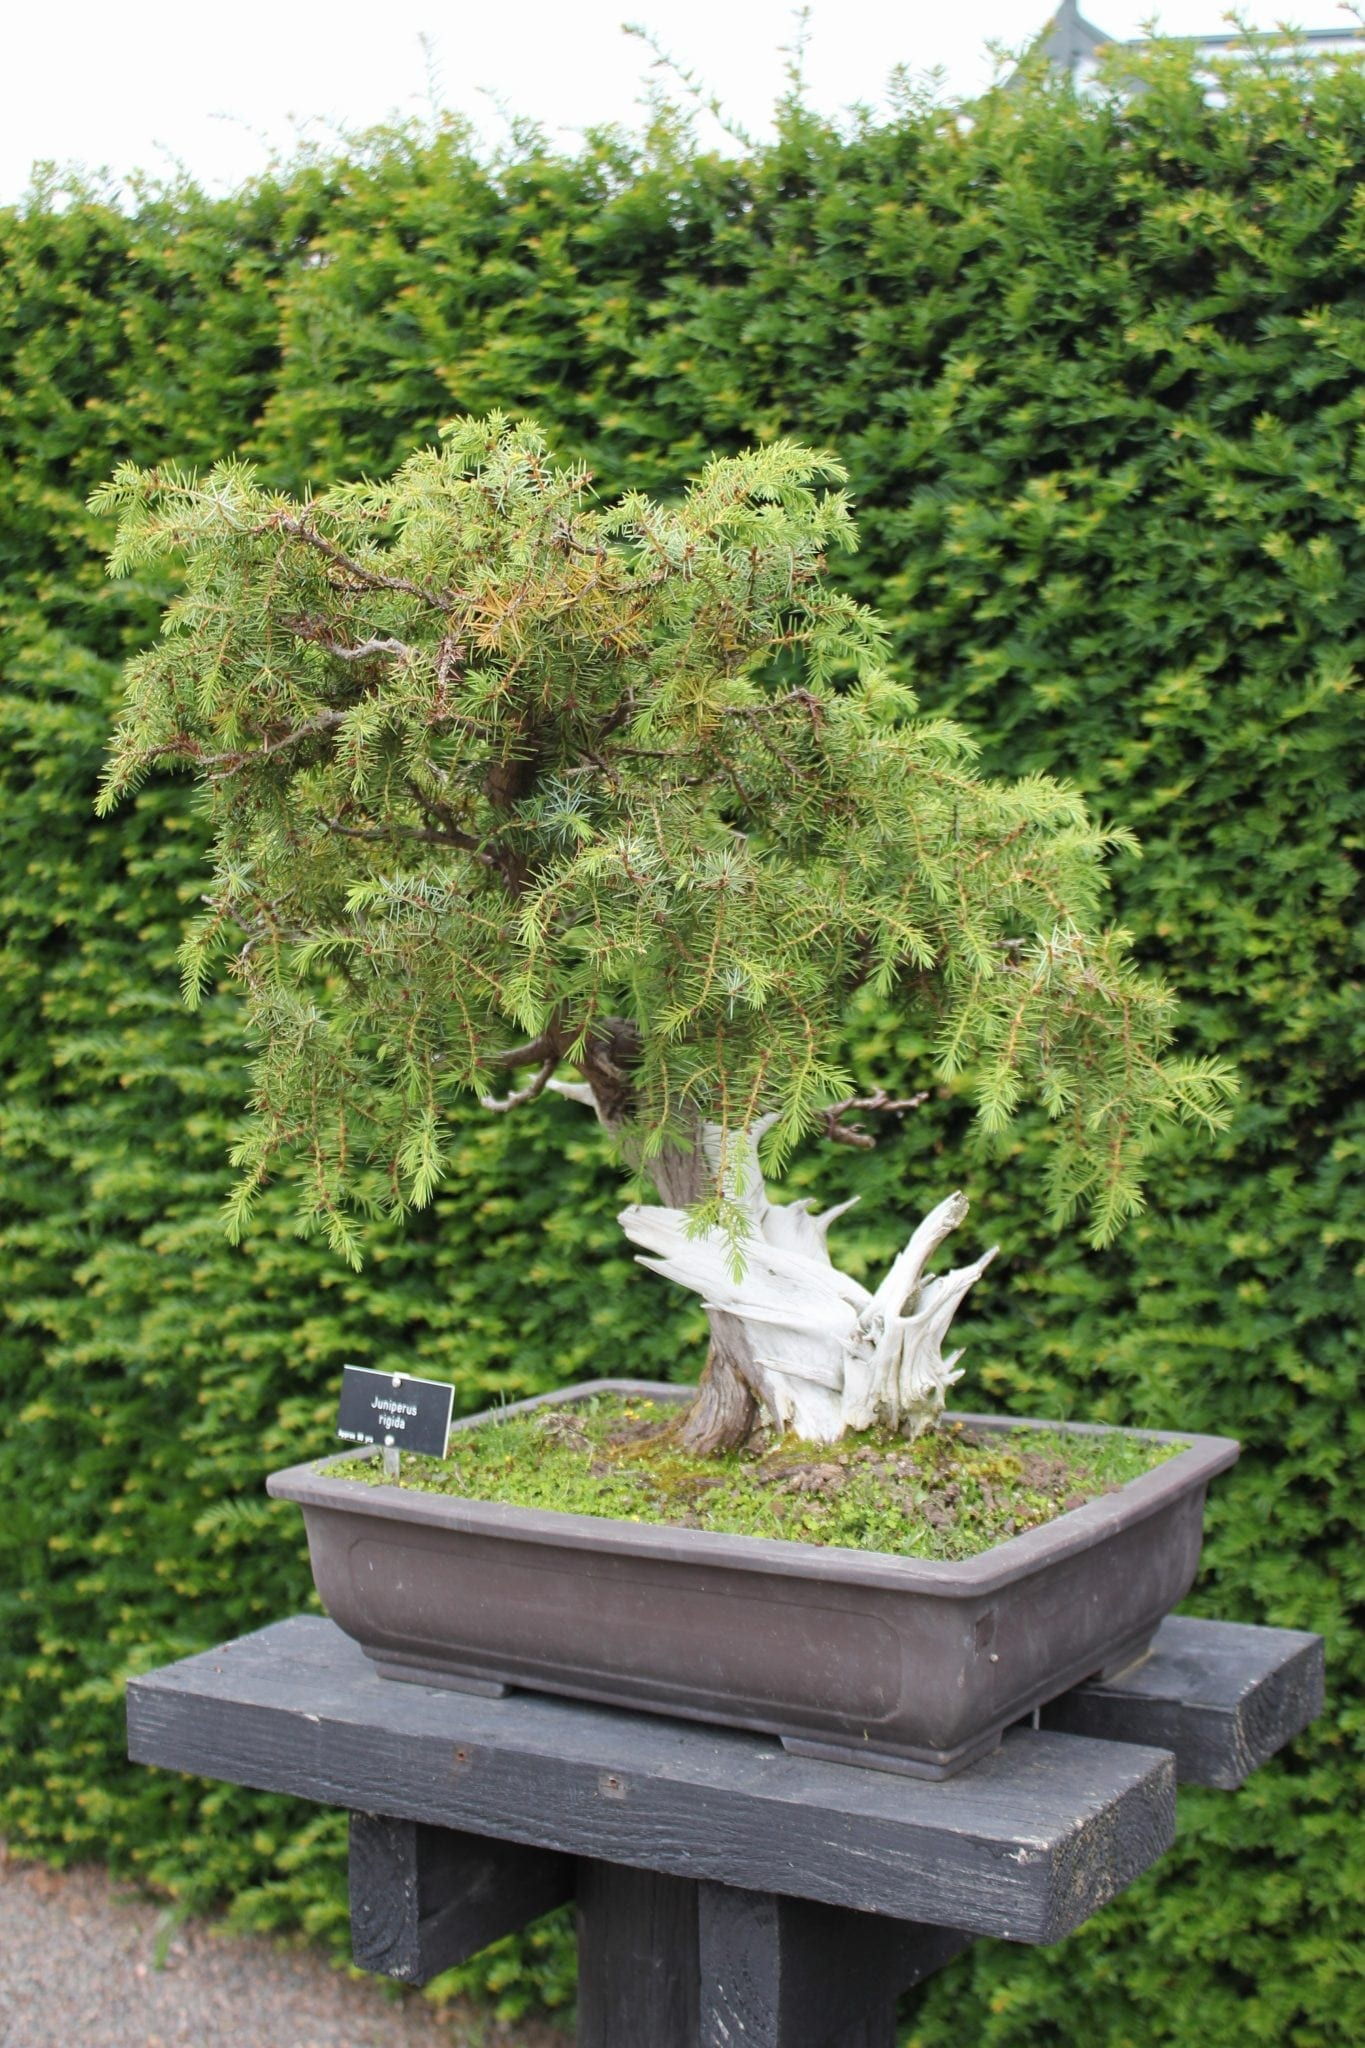 How Bonsai Trees Are Made